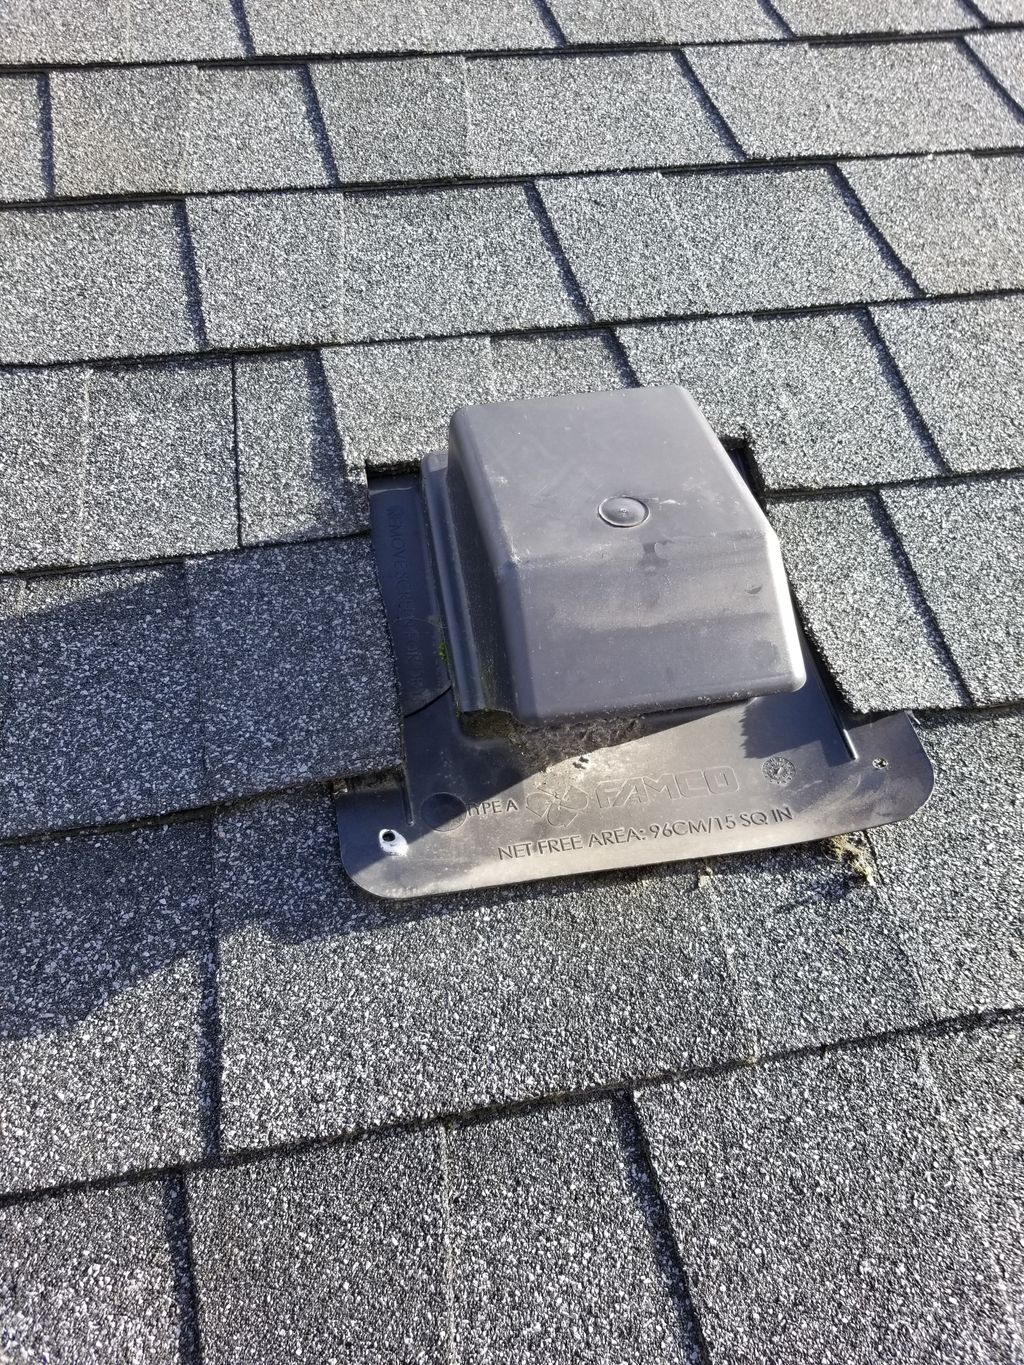 Leaky Exhaust Vent Replacement and Moss Treatment